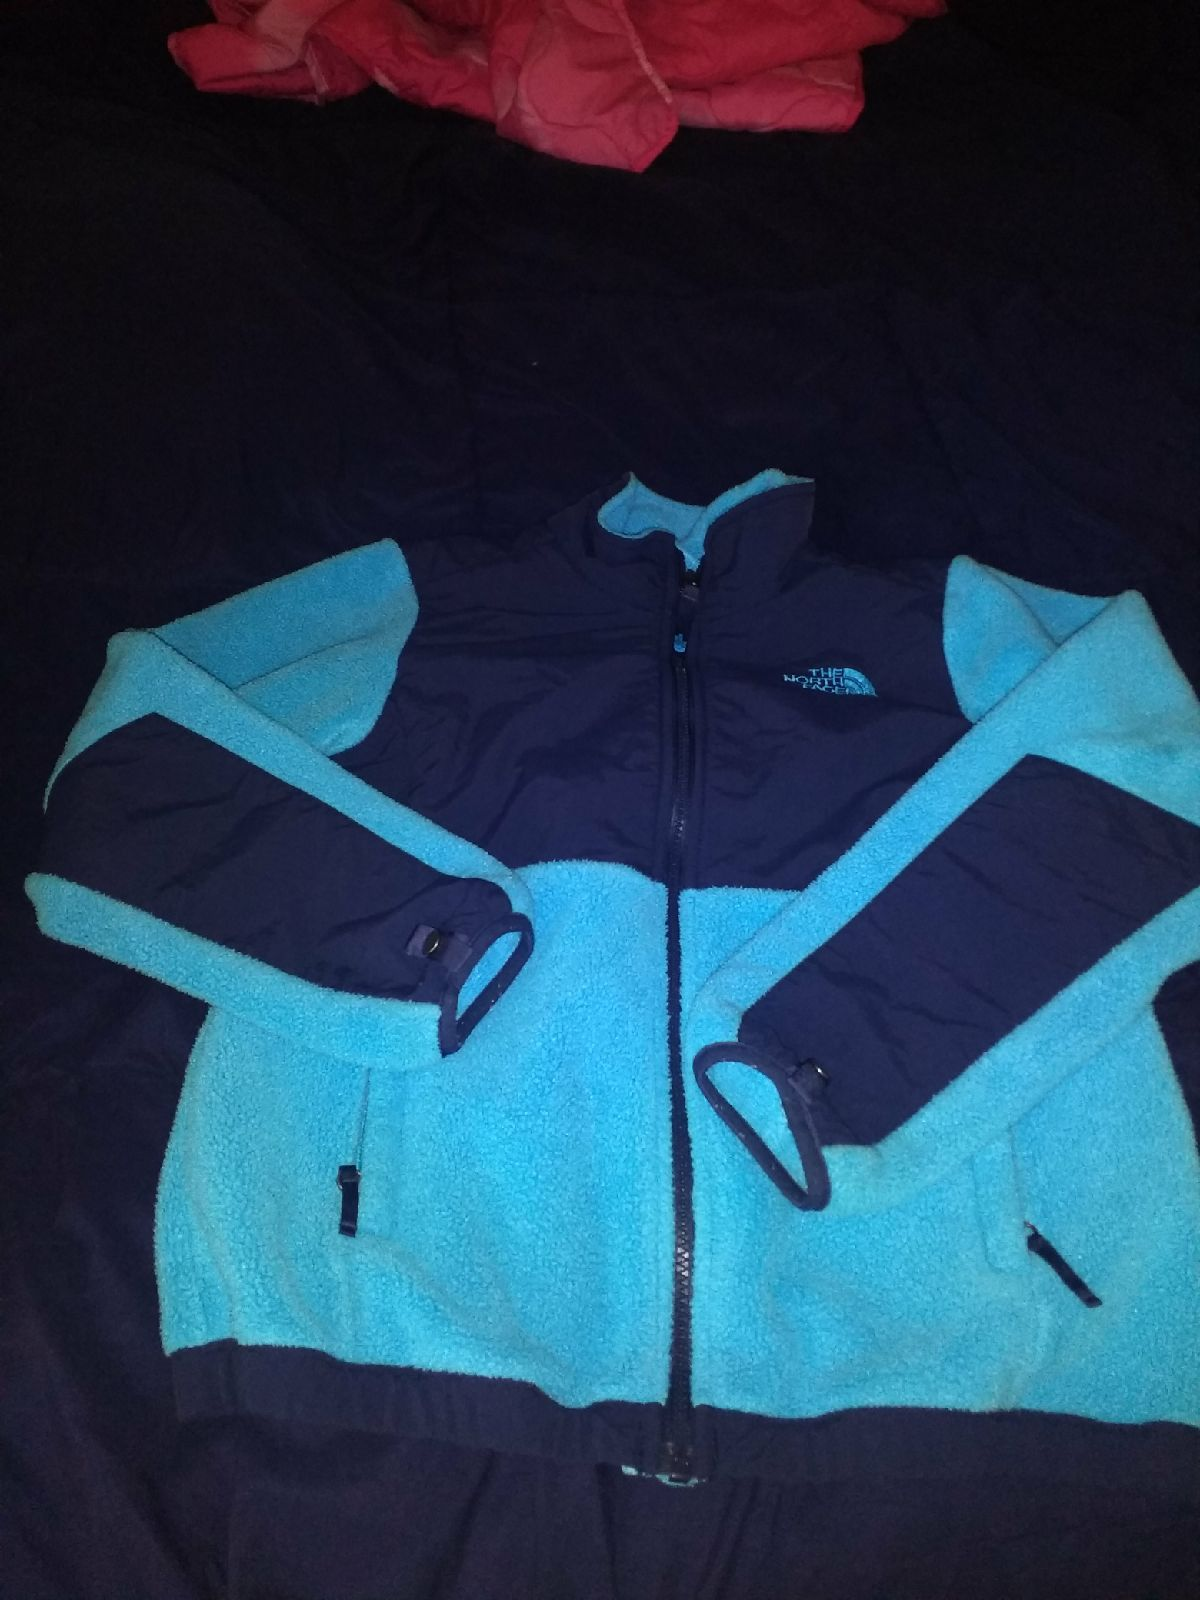 Kids North Face Denali Jacket Is Light Blue With Dark Navy Blue There Are No Rips Or Stains No Pulling Noted On The Jackets North Face Jacket The North Face [ 1600 x 1200 Pixel ]